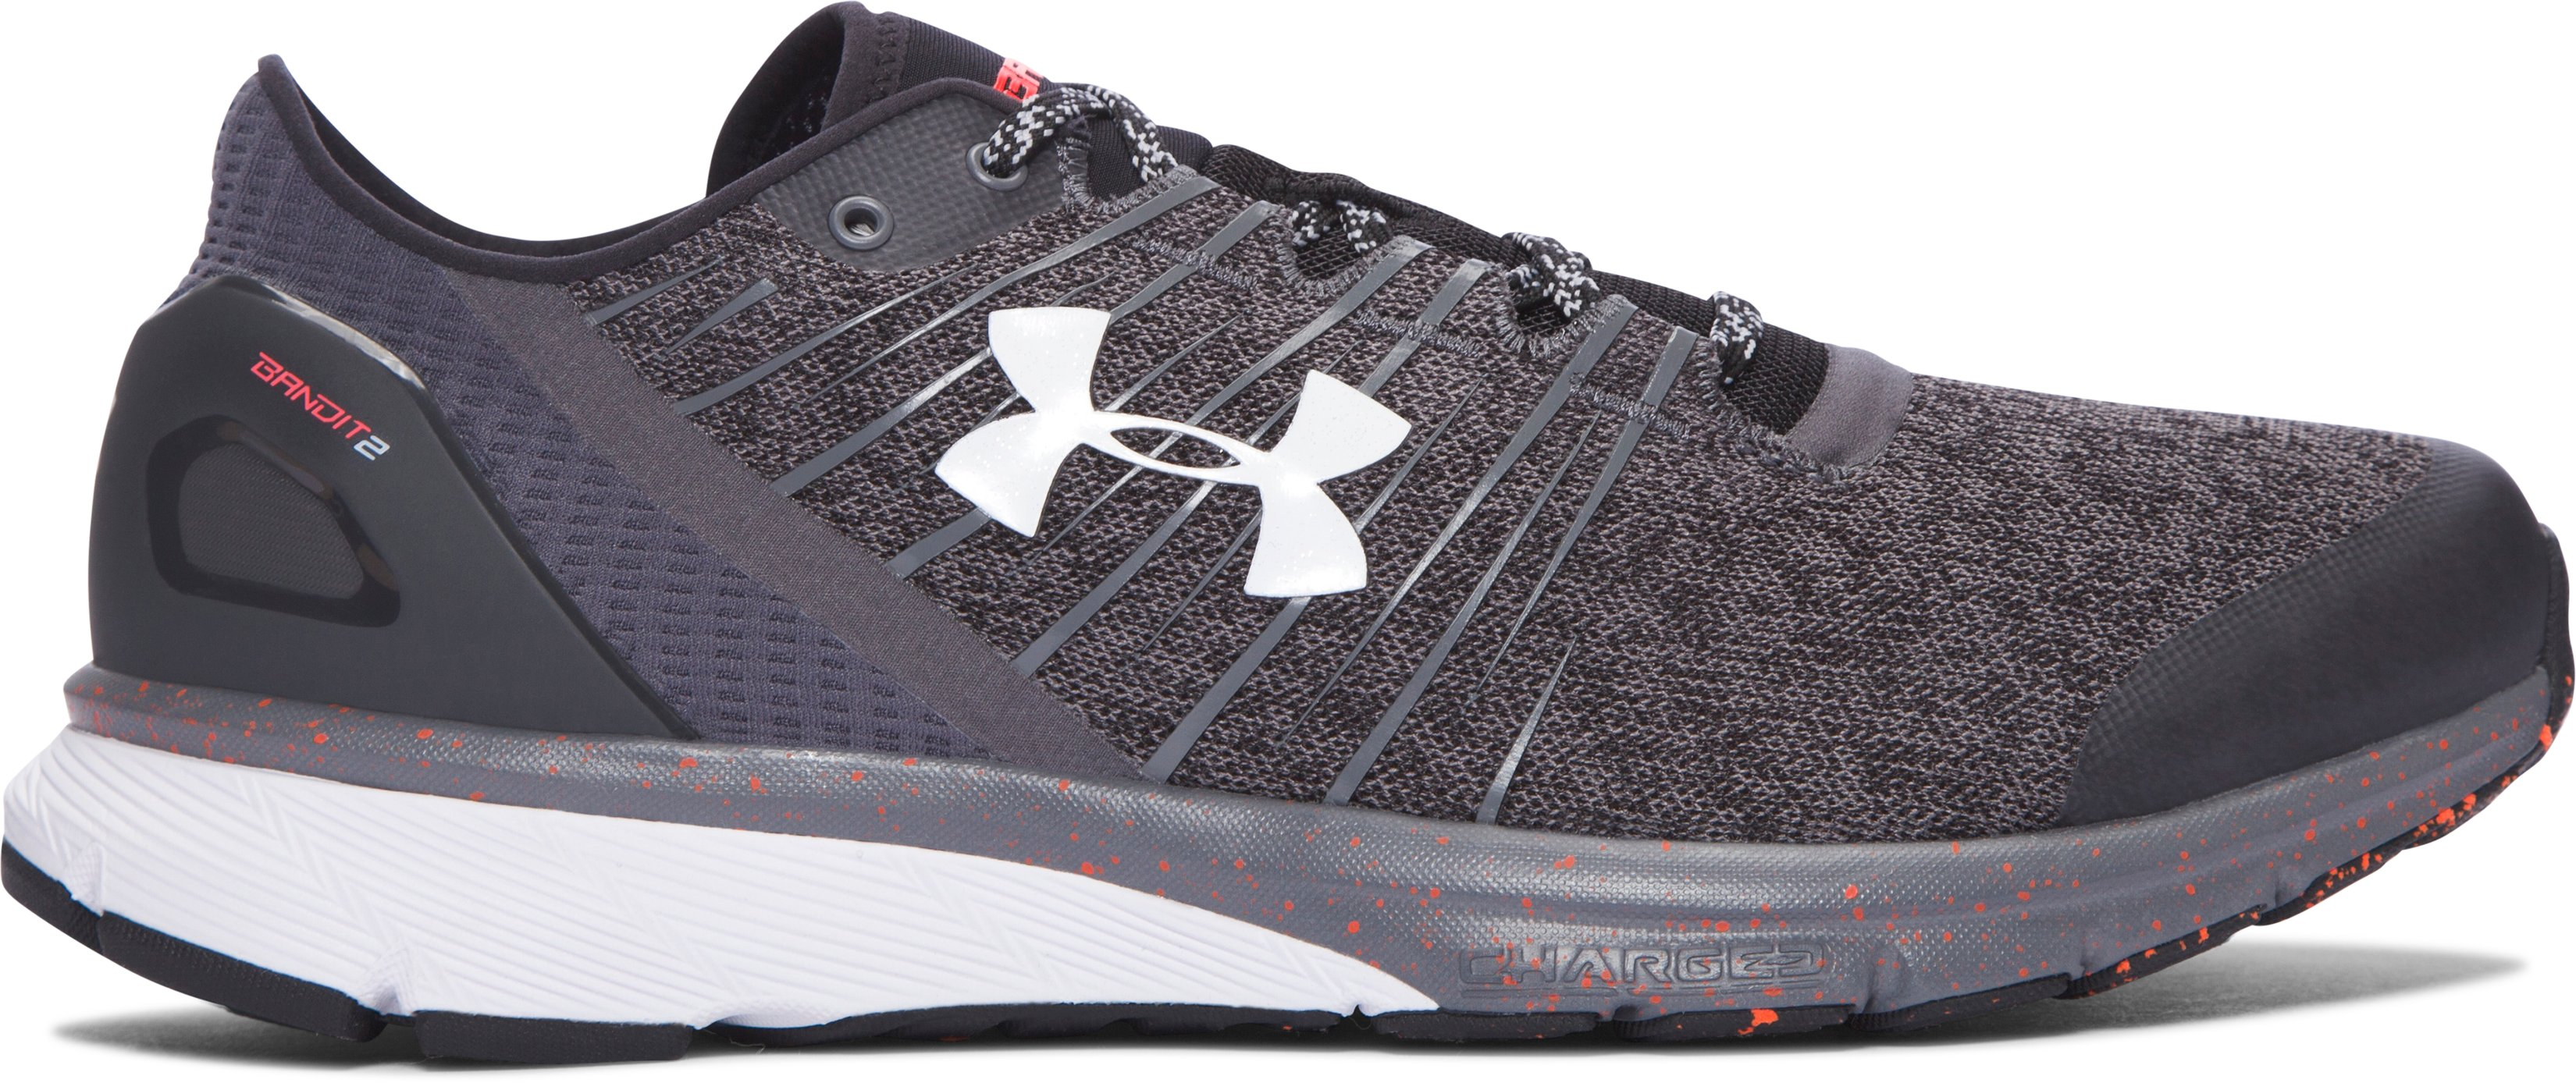 Zapatillas de Running UA Charged Bandit 2 para Hombre, 360 degree view